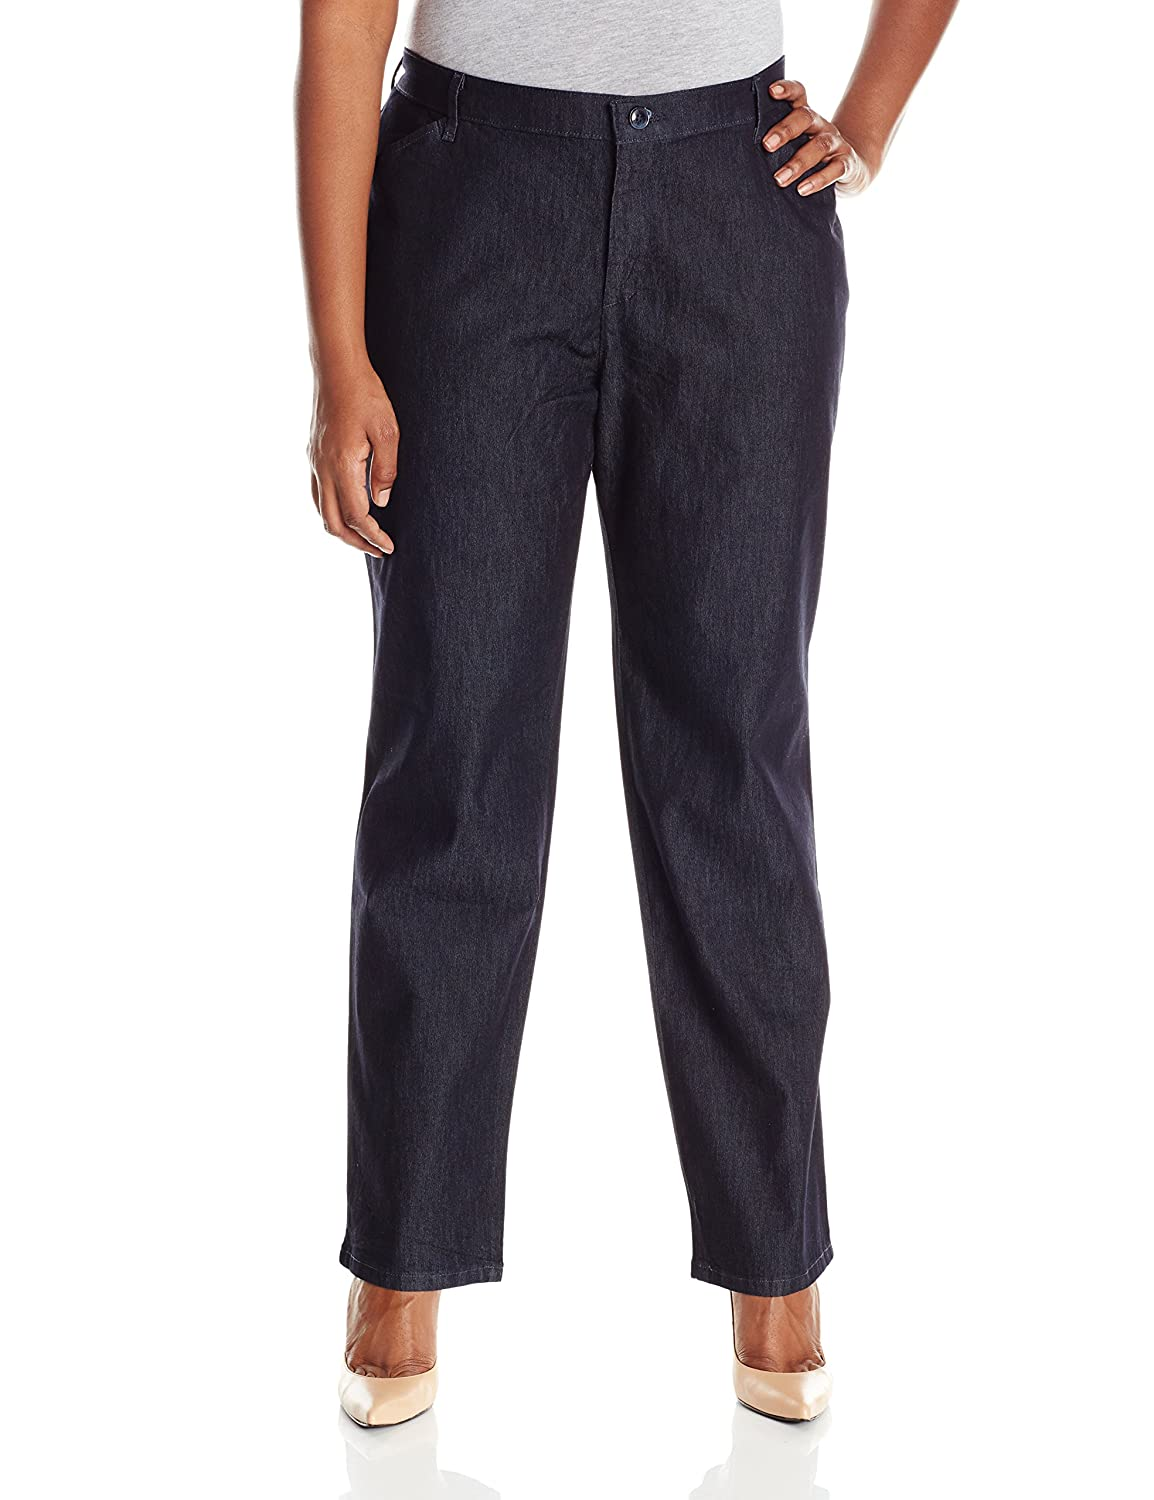 Lee Women's Plus-Size Relaxed Fit Original All Day Pant Lee Women' s Collection 48503